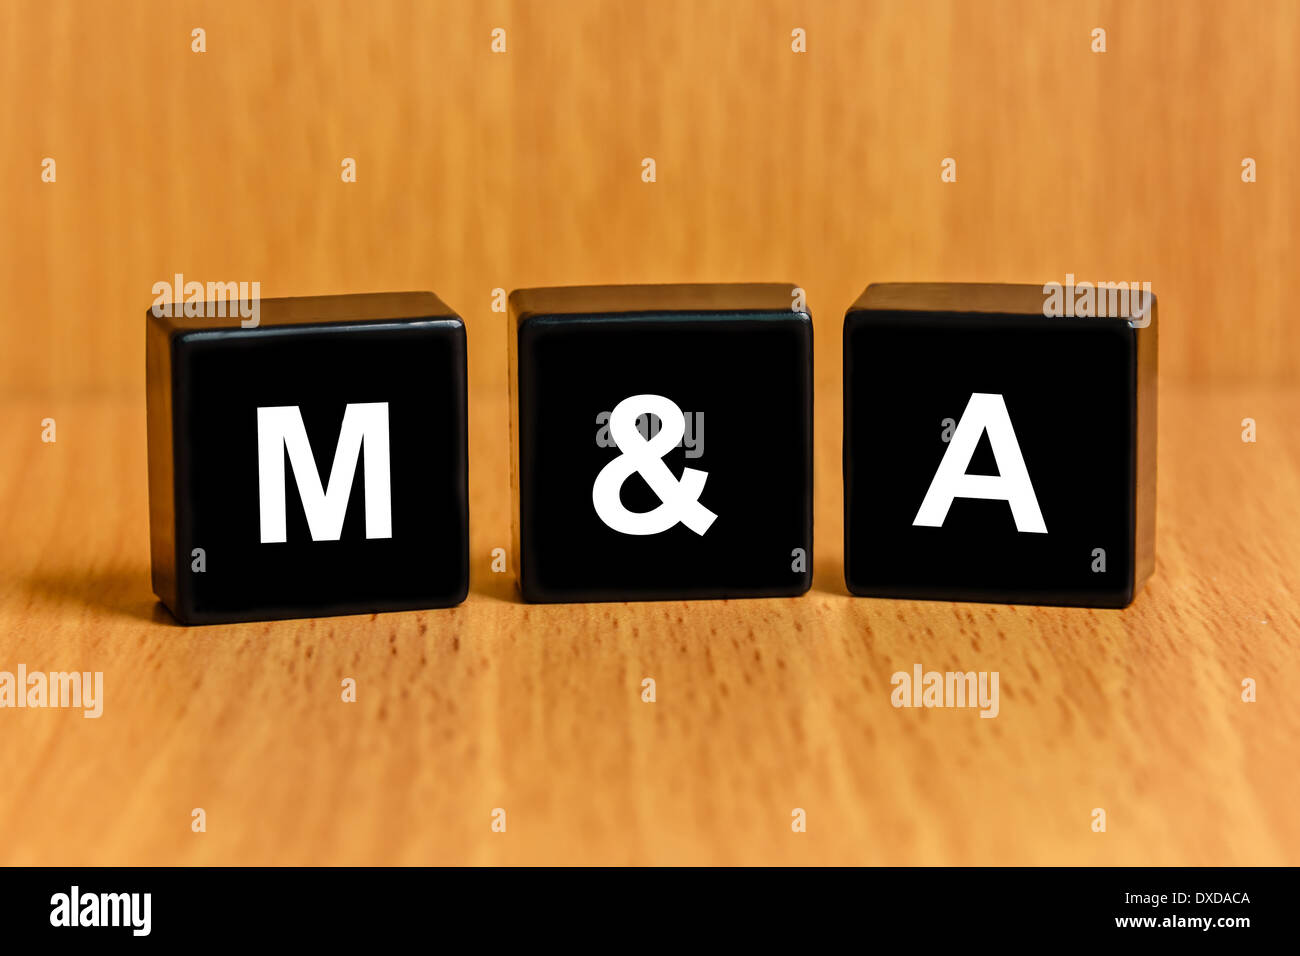 M&A or Merger and Acquisition text on black block - Stock Image